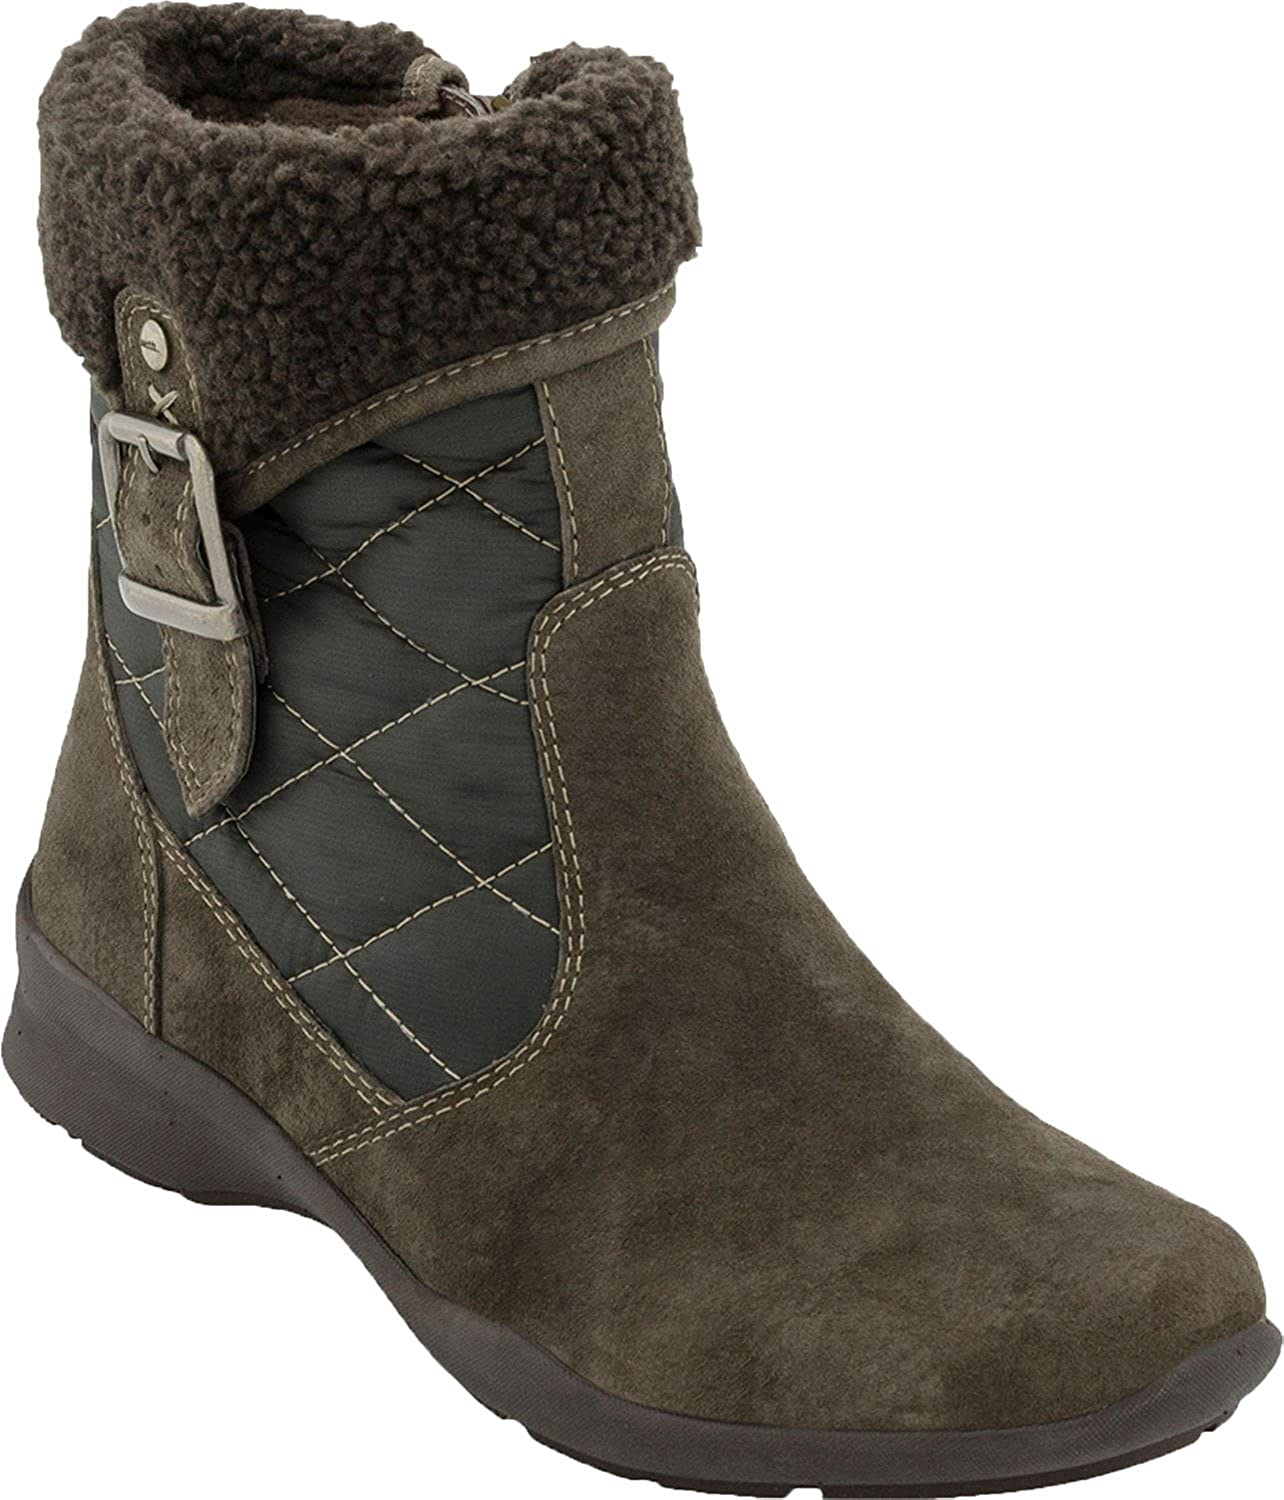 Earth Women's Pinnacle Water Resistant Ankle Boot